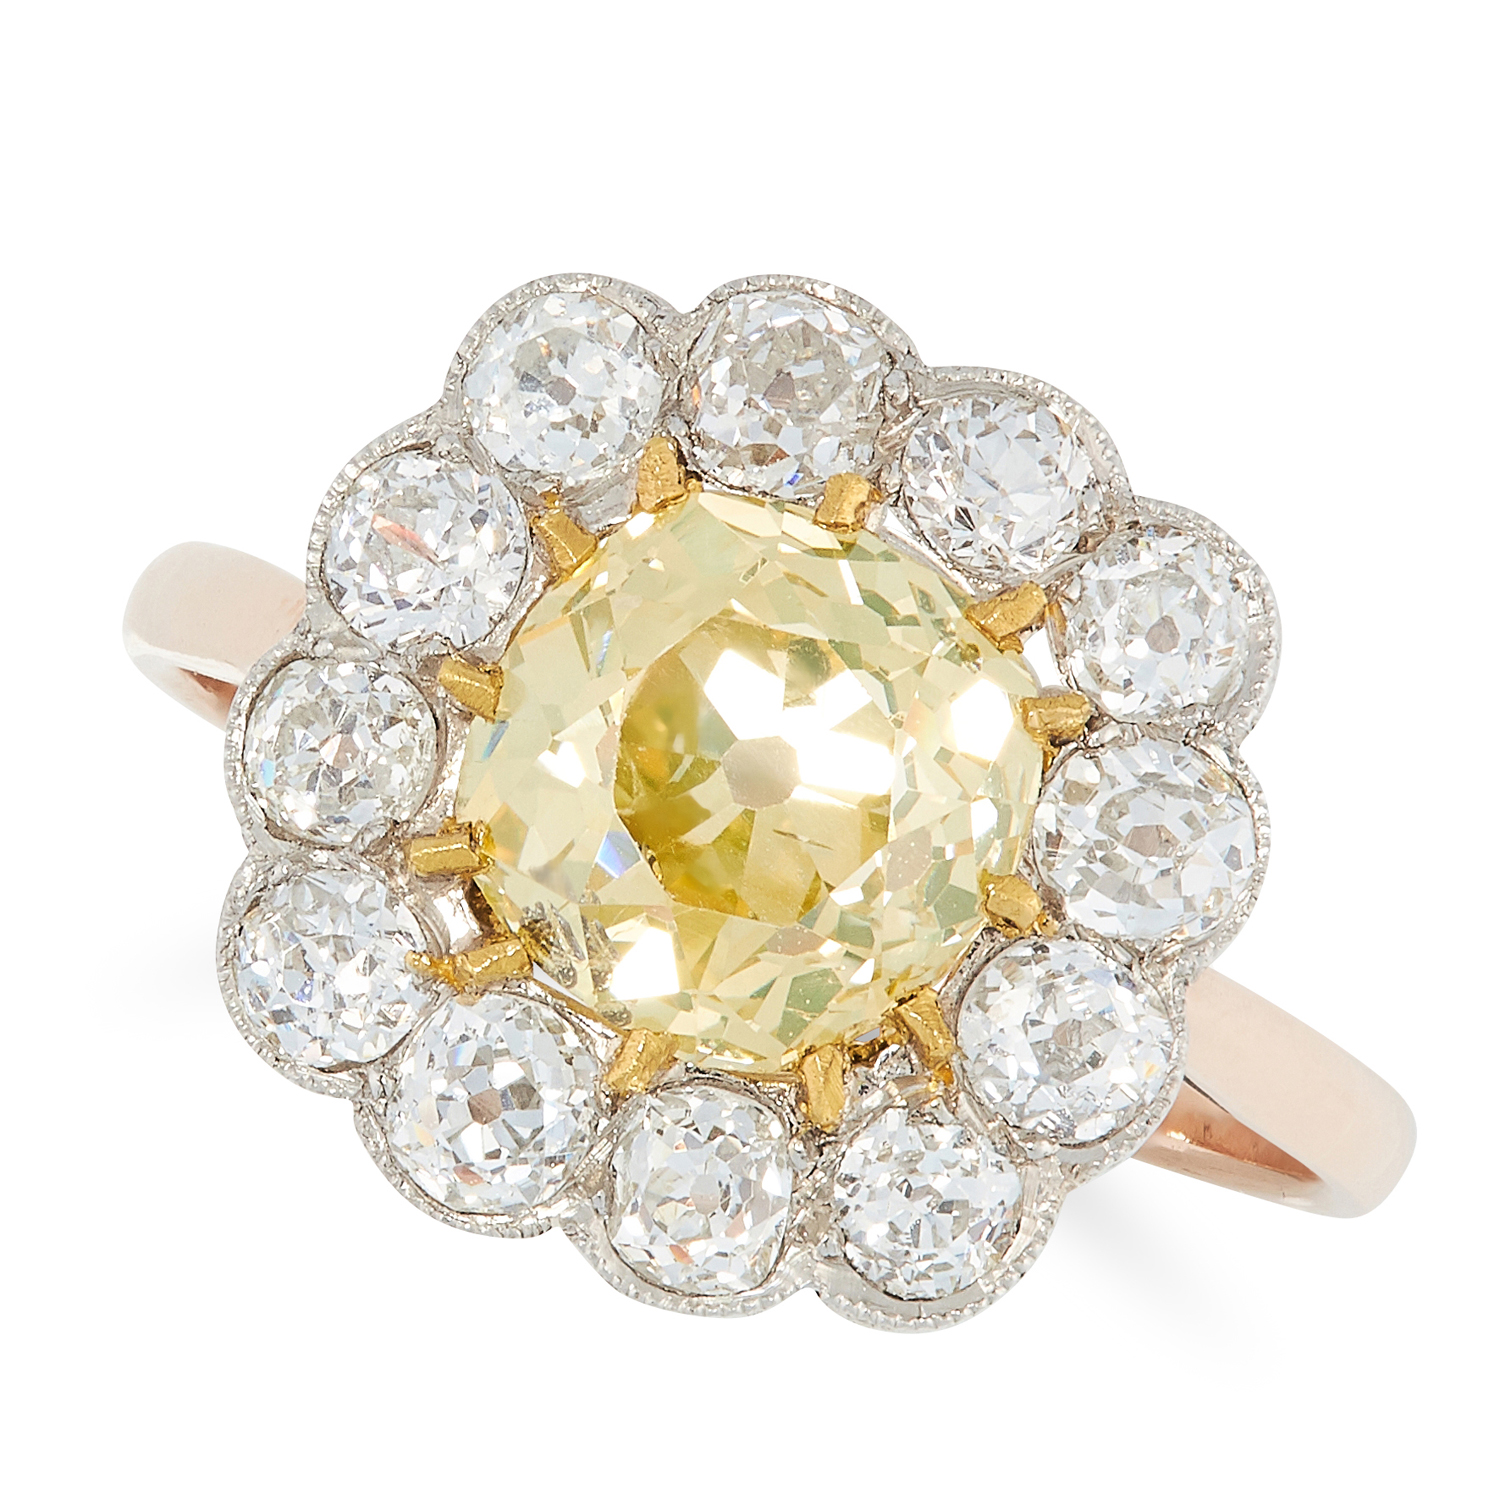 A FANCY YELLOW DIAMOND CLUSTER RING in yellow gold, set with an old cut fancy yellow diamond of